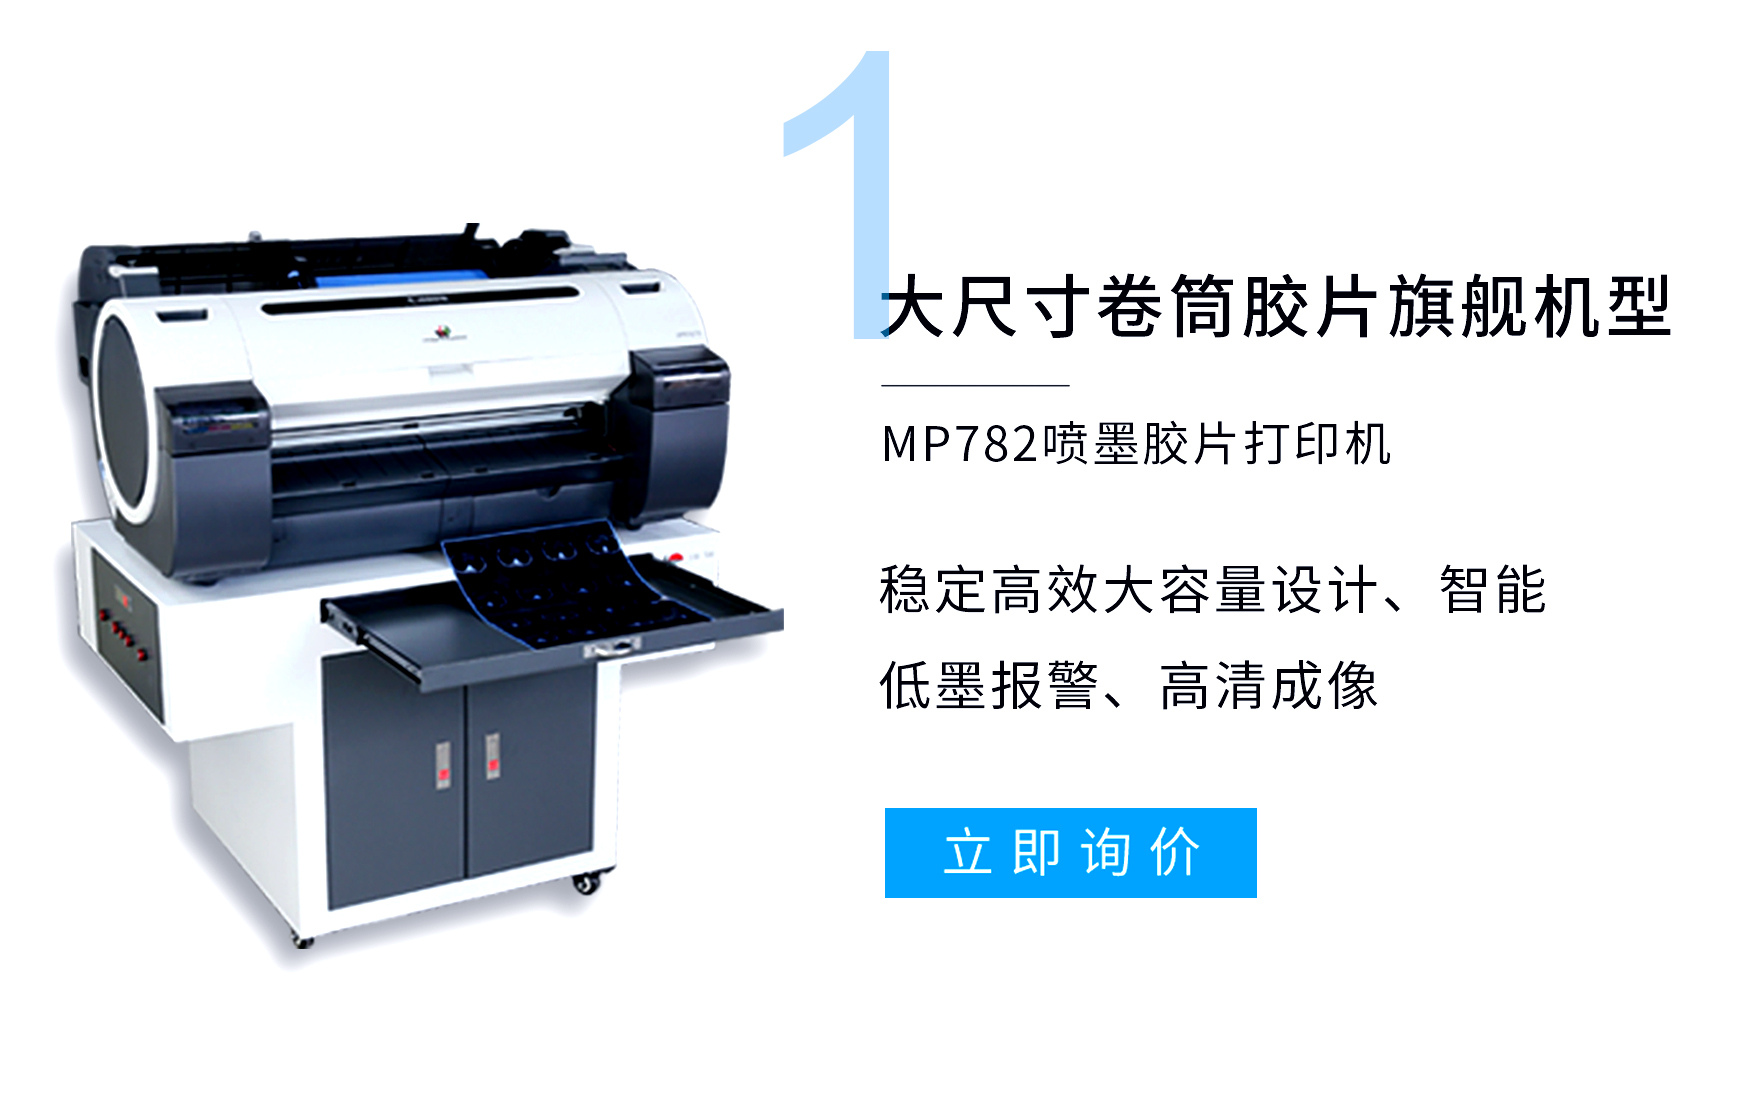 MP782 film printer